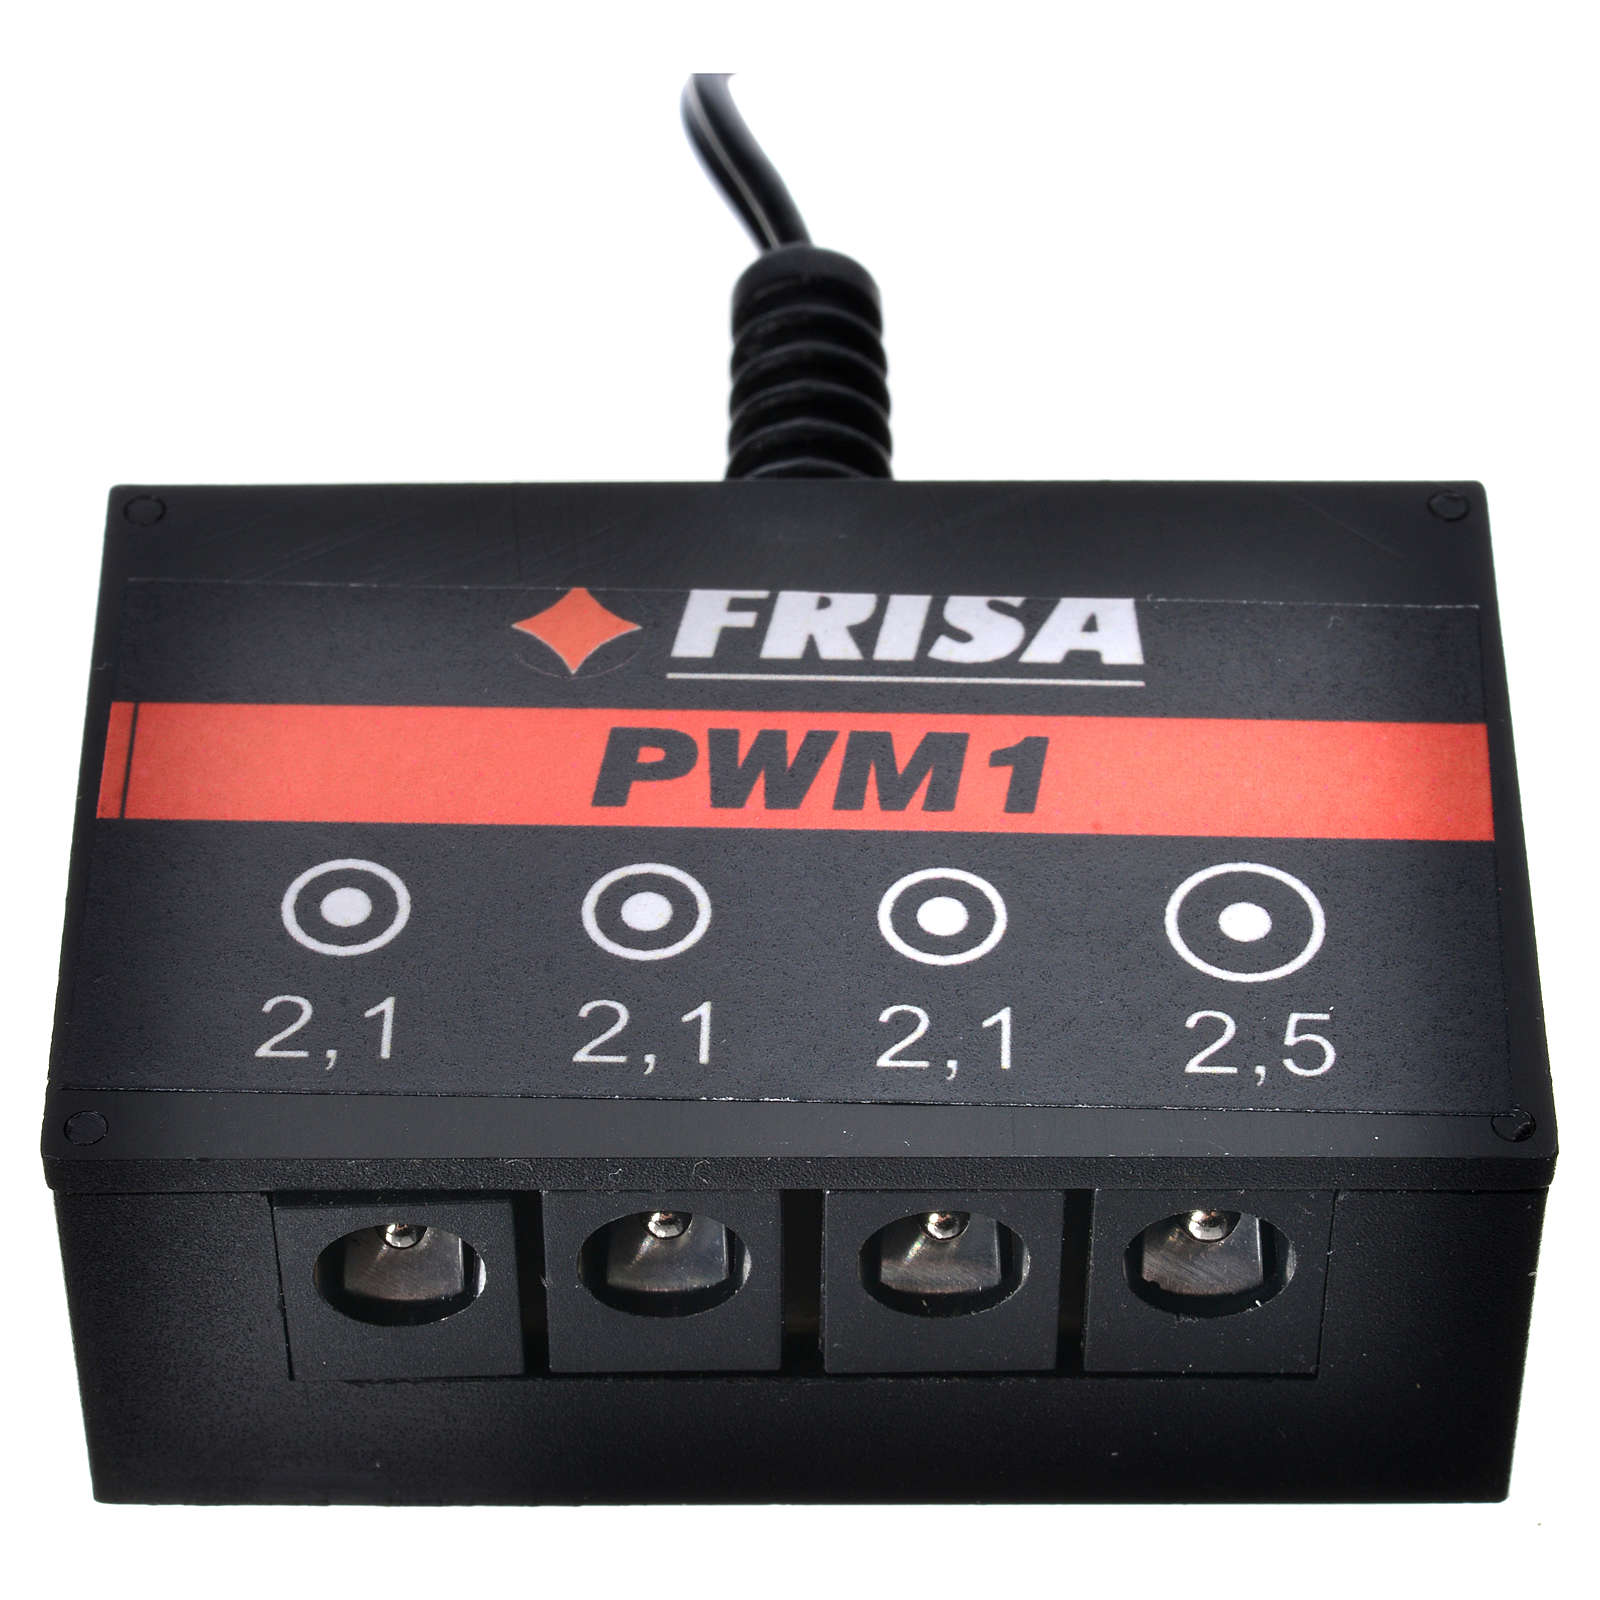 Multiprise 1 bande PS + 3 leds PWM1 FrialPower 4